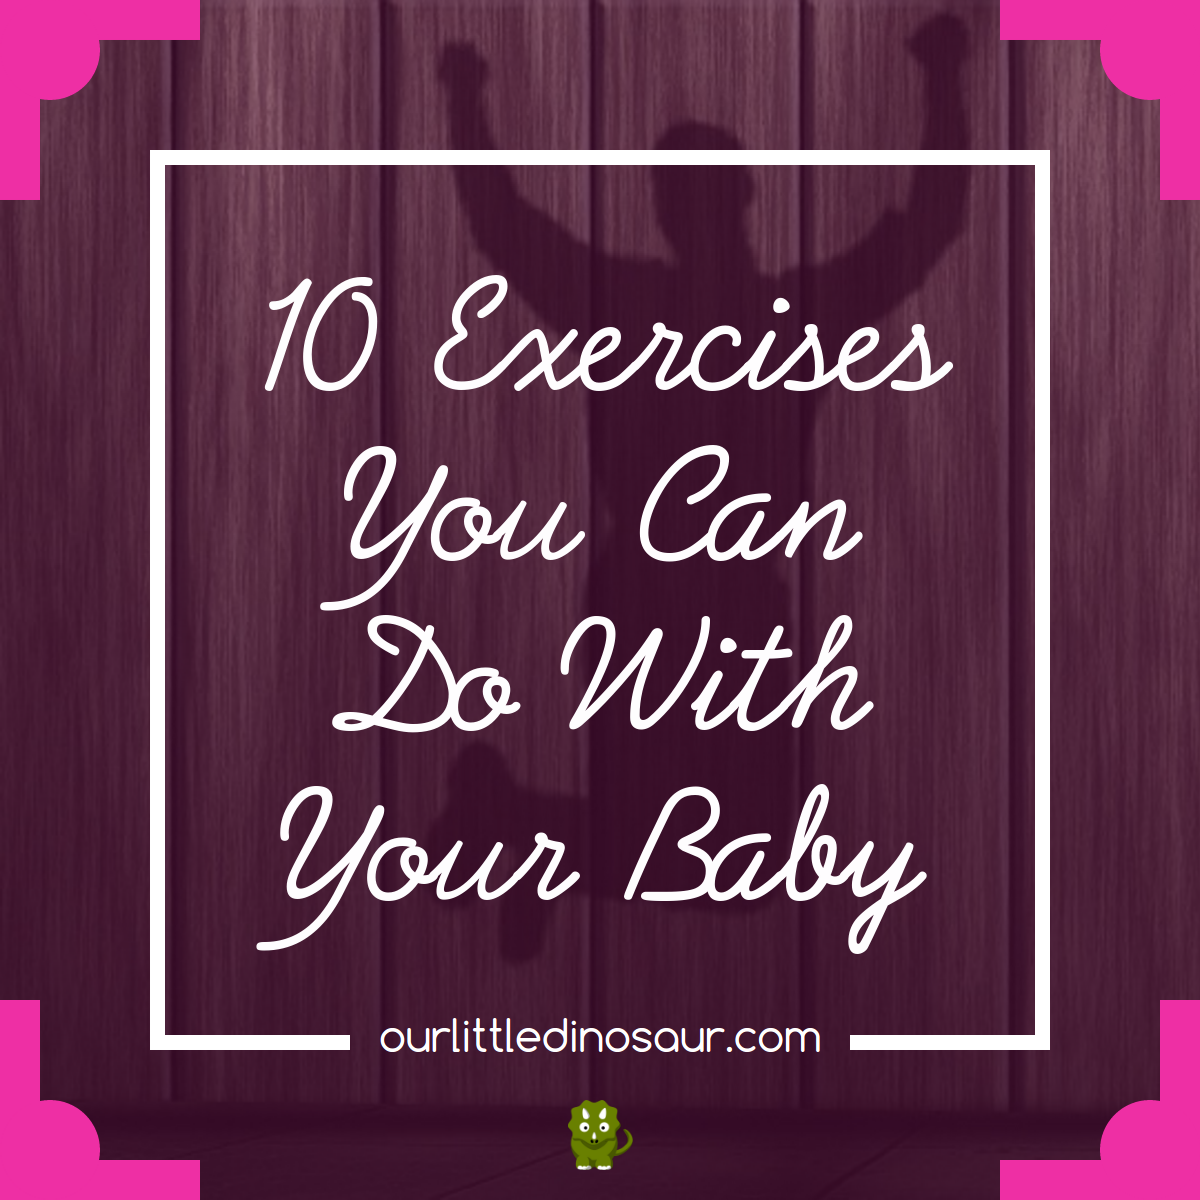 10-exercises-you-can-do-with-your-baby